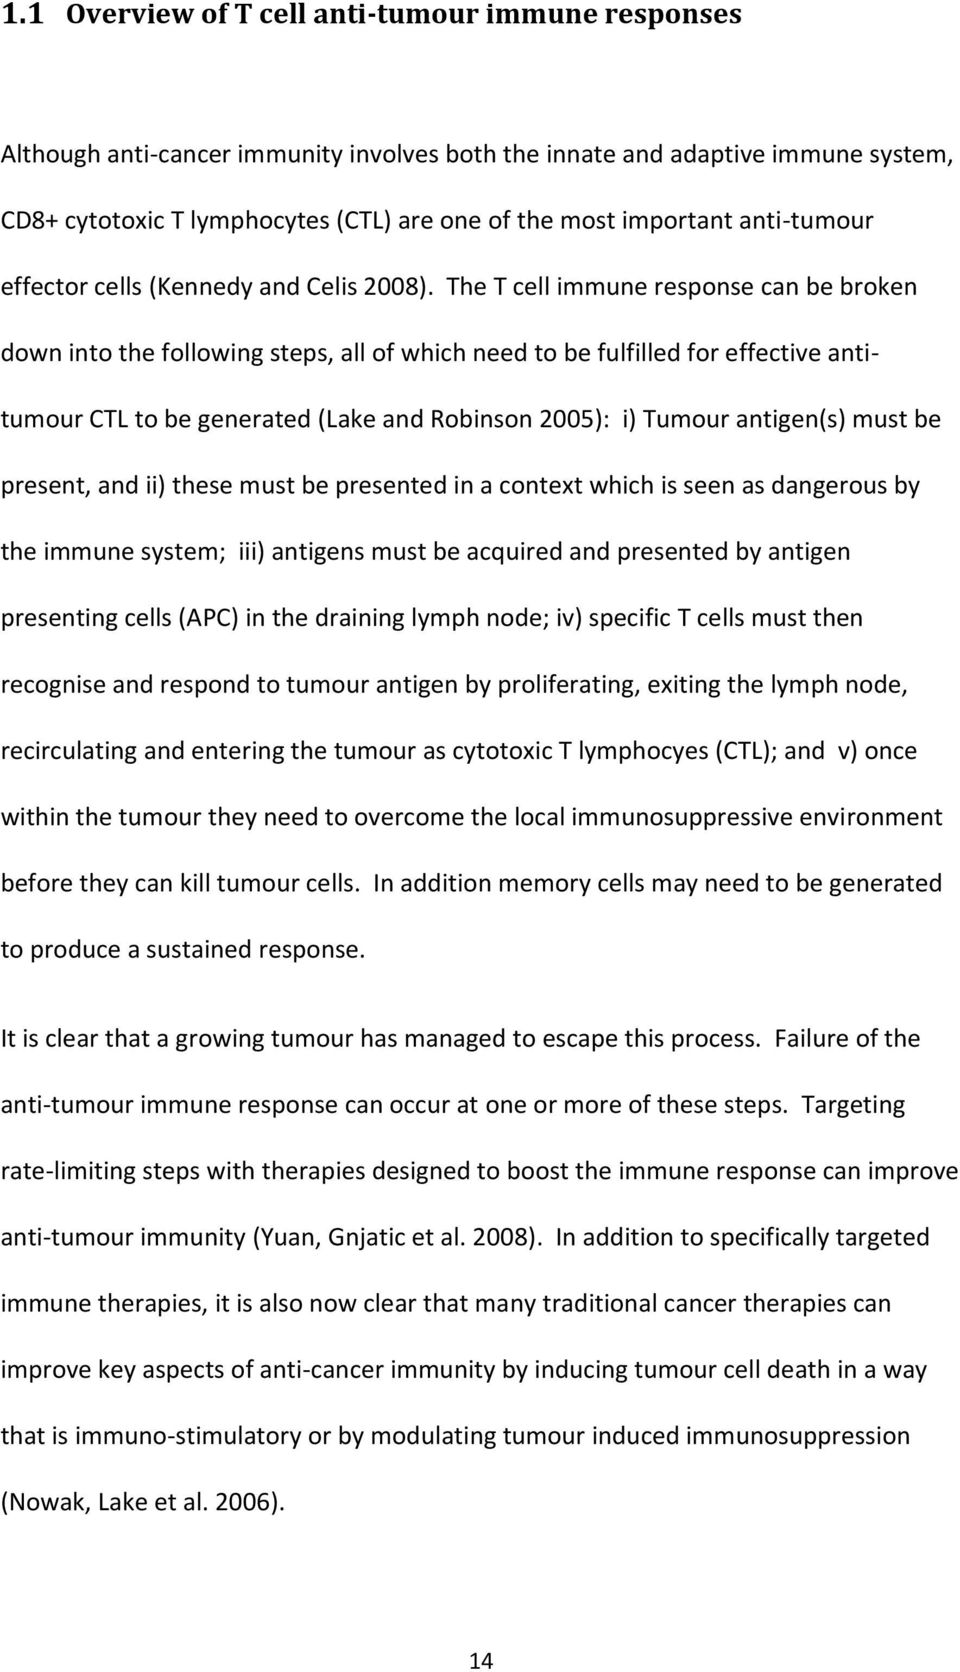 The T cell immune response can be broken down into the following steps, all of which need to be fulfilled for effective antitumour CTL to be generated (Lake and Robinson 25): i) Tumour antigen(s)